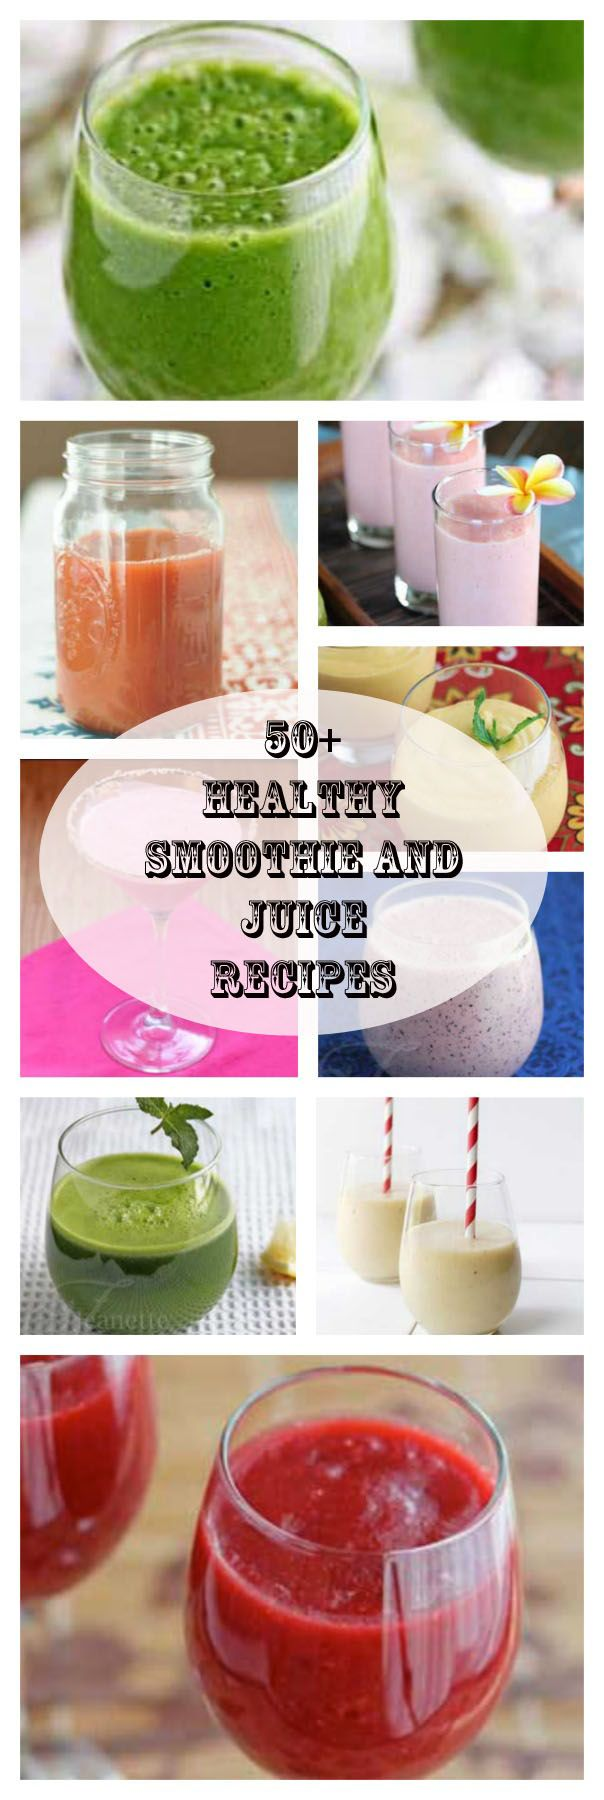 Healthy Smoothie and Juice Recipes for Cleansing and Detox - Jeanette's Healthy Living